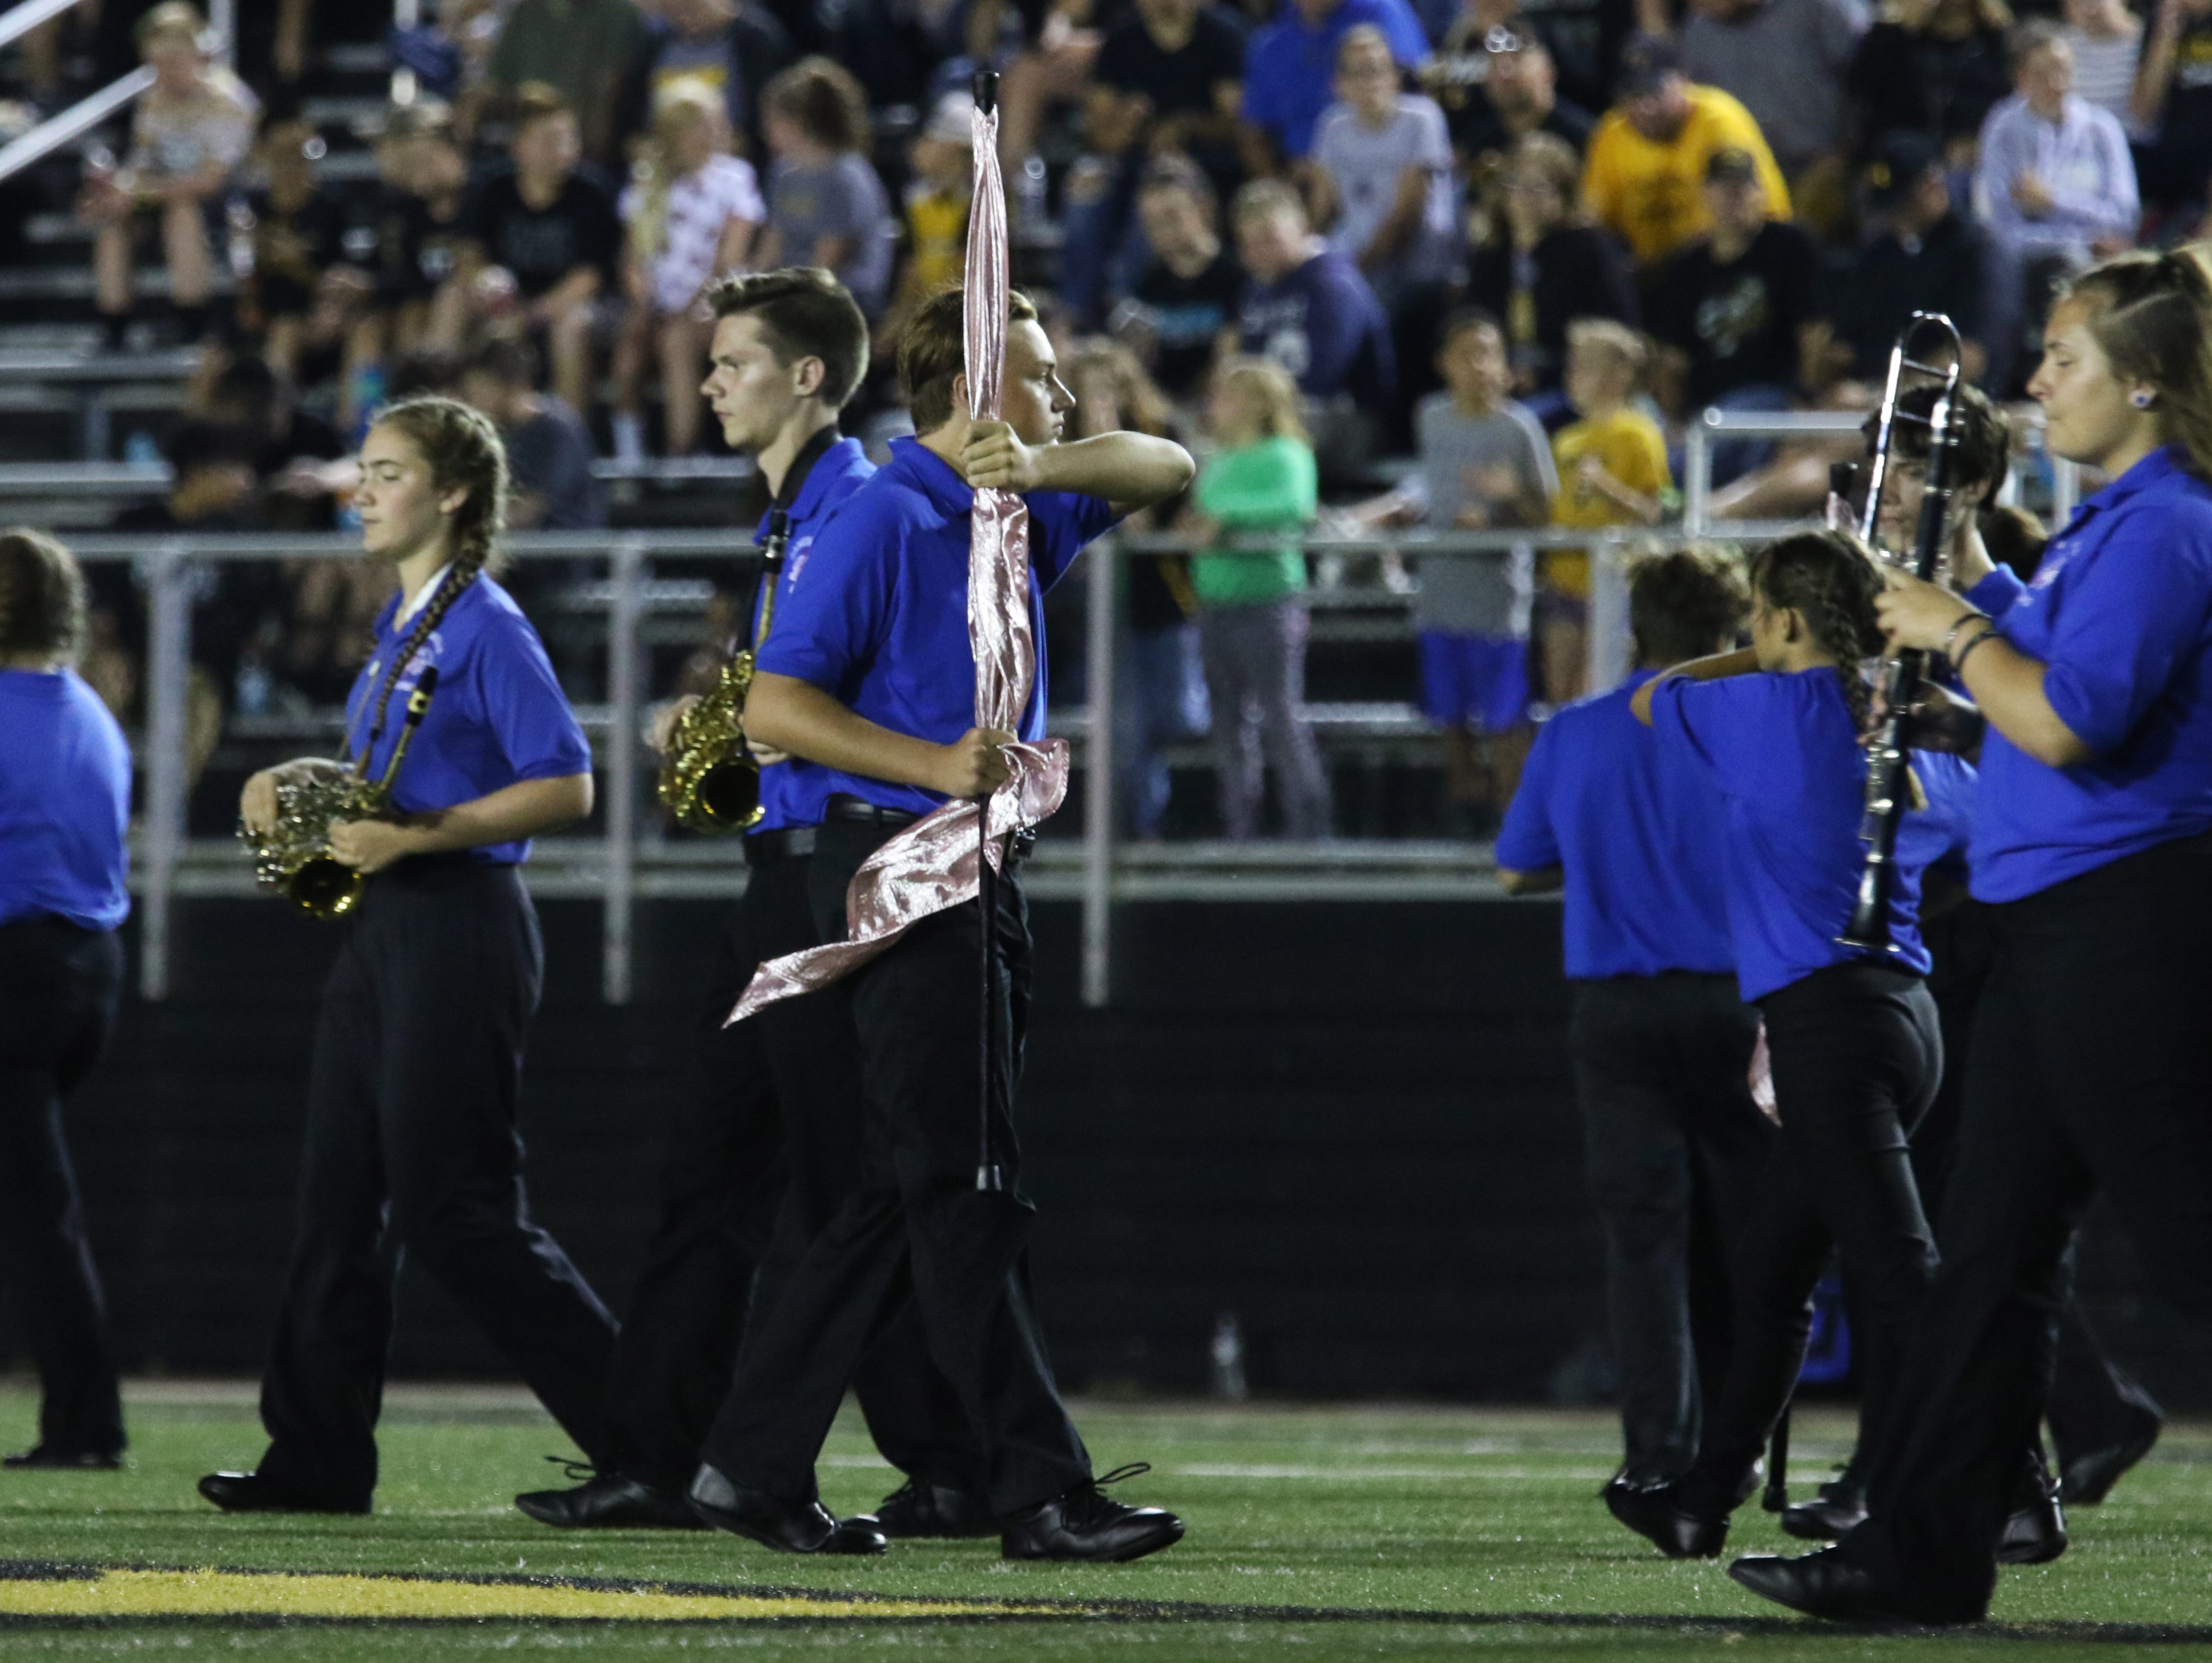 The Zanesville High School marching band performs during halftime of Friday's game.